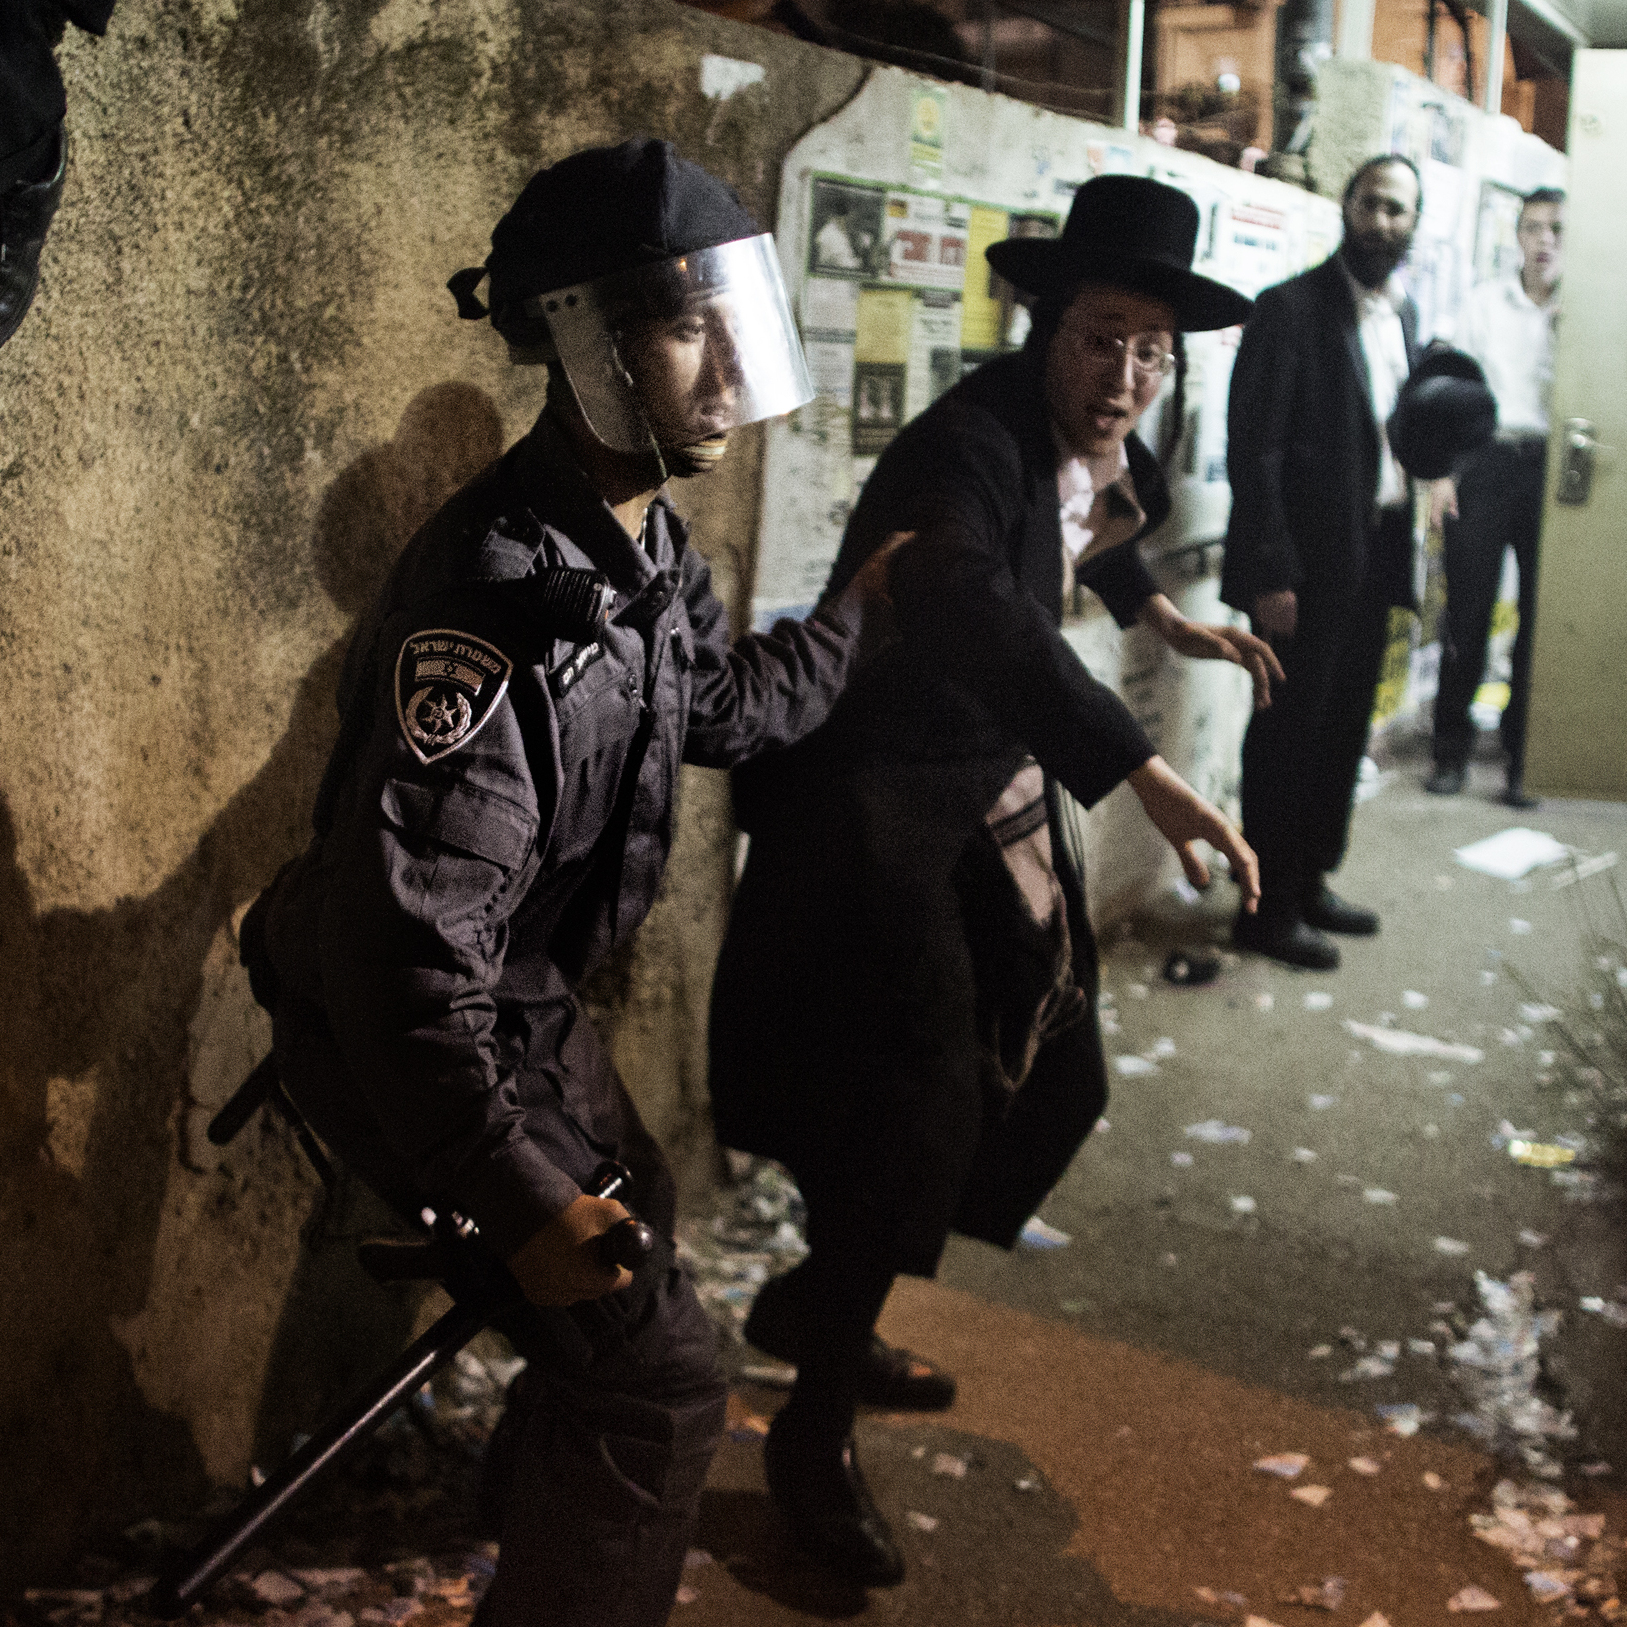 An Israeli police officer arrests an Ultra-Orthodox Jew during a protest against the draft law in Jerusalem on May 16.